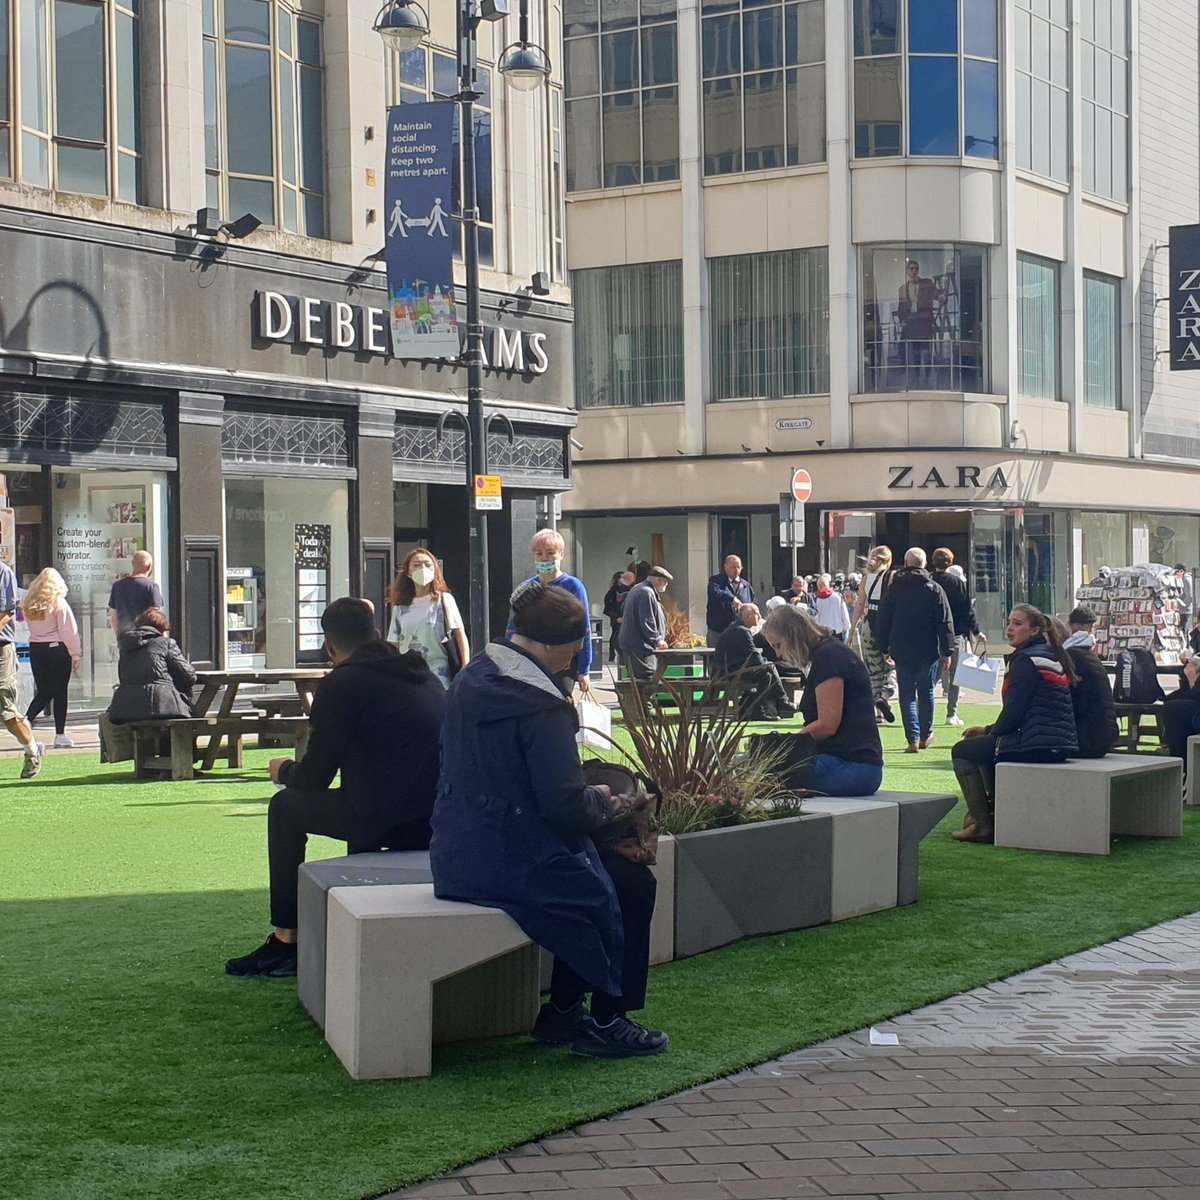 The Briggate Pop-up Park is now open! It provides a little extra greenery in the city centre, and more space to sit down. Delivered in conjunction with our local suppliers @MarshallsCom and @eternallawns. 🌱#ReDiscoverLeeds https://t.co/6myW5CSVFm